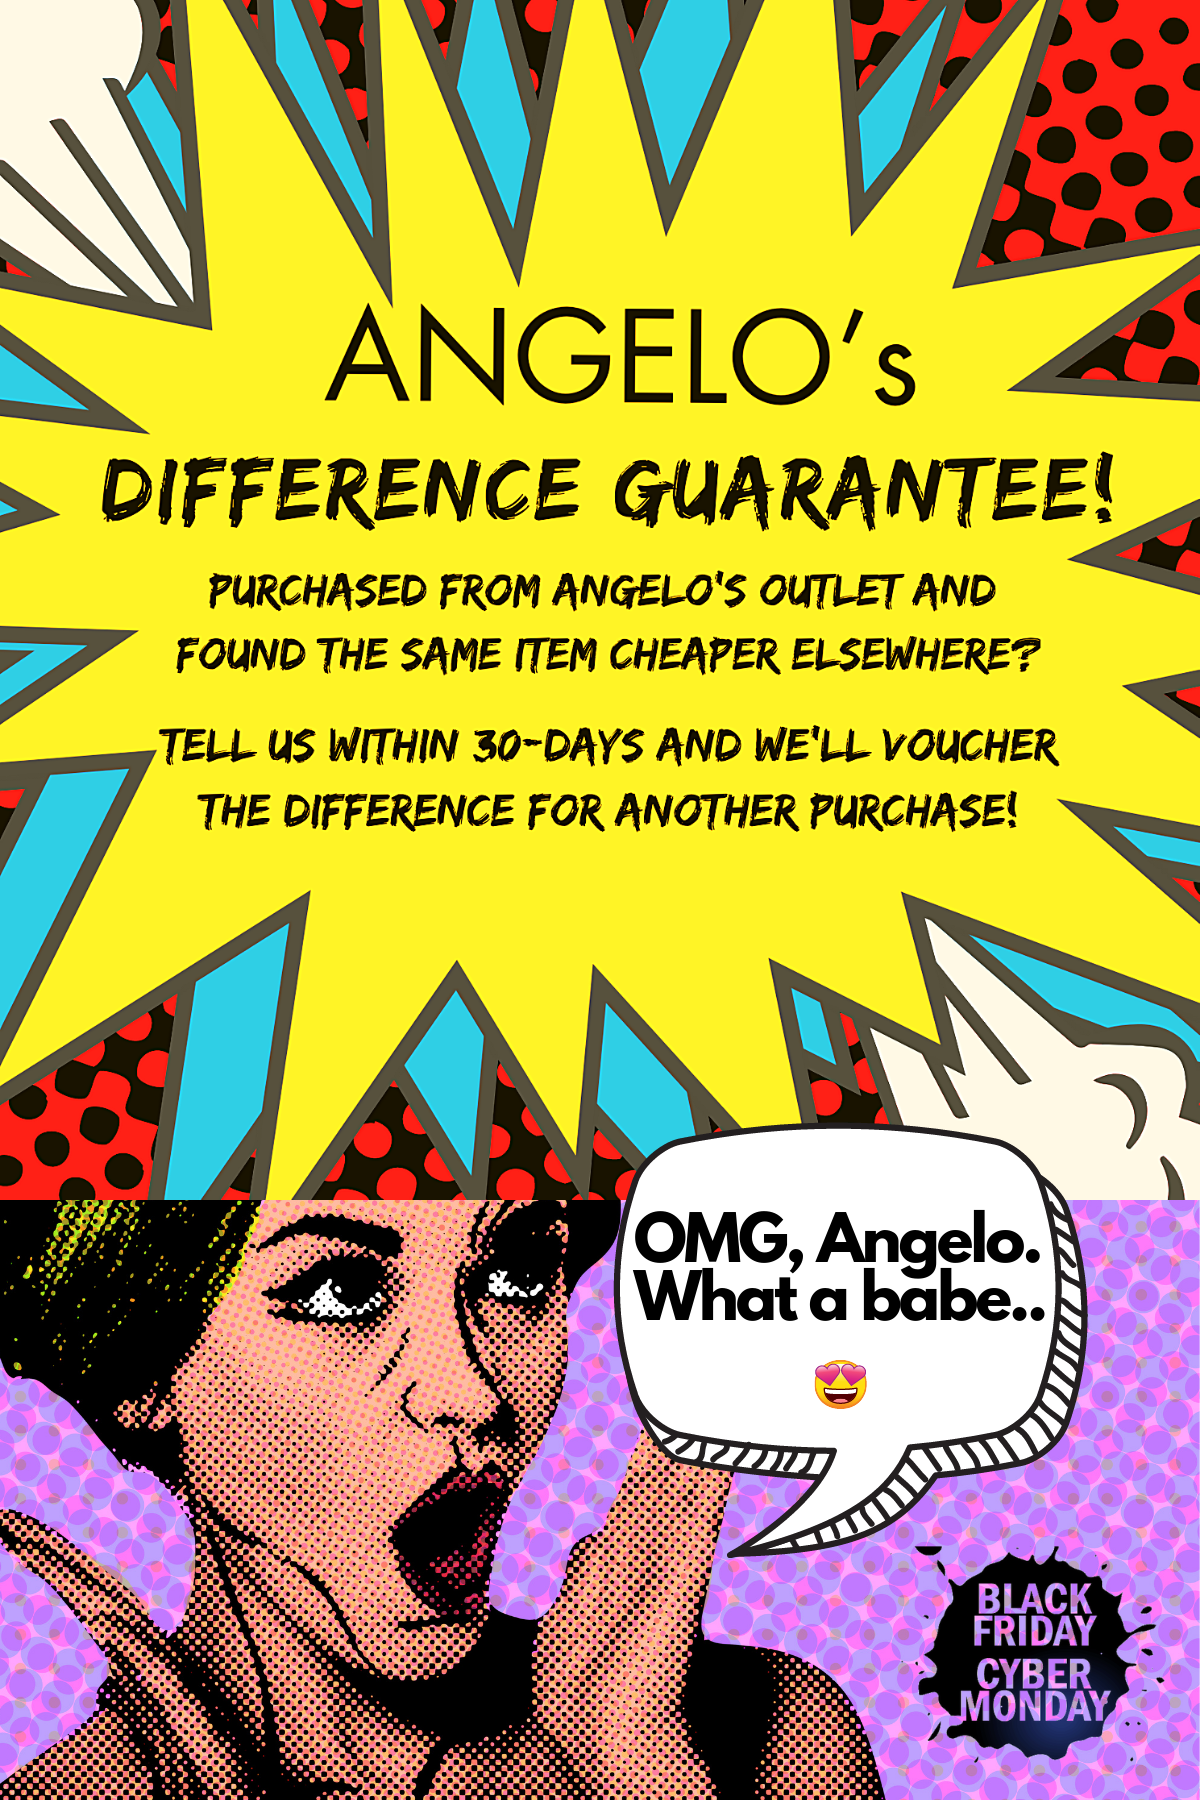 A Pop Art promo piece on Angelos Difference Guarantee.